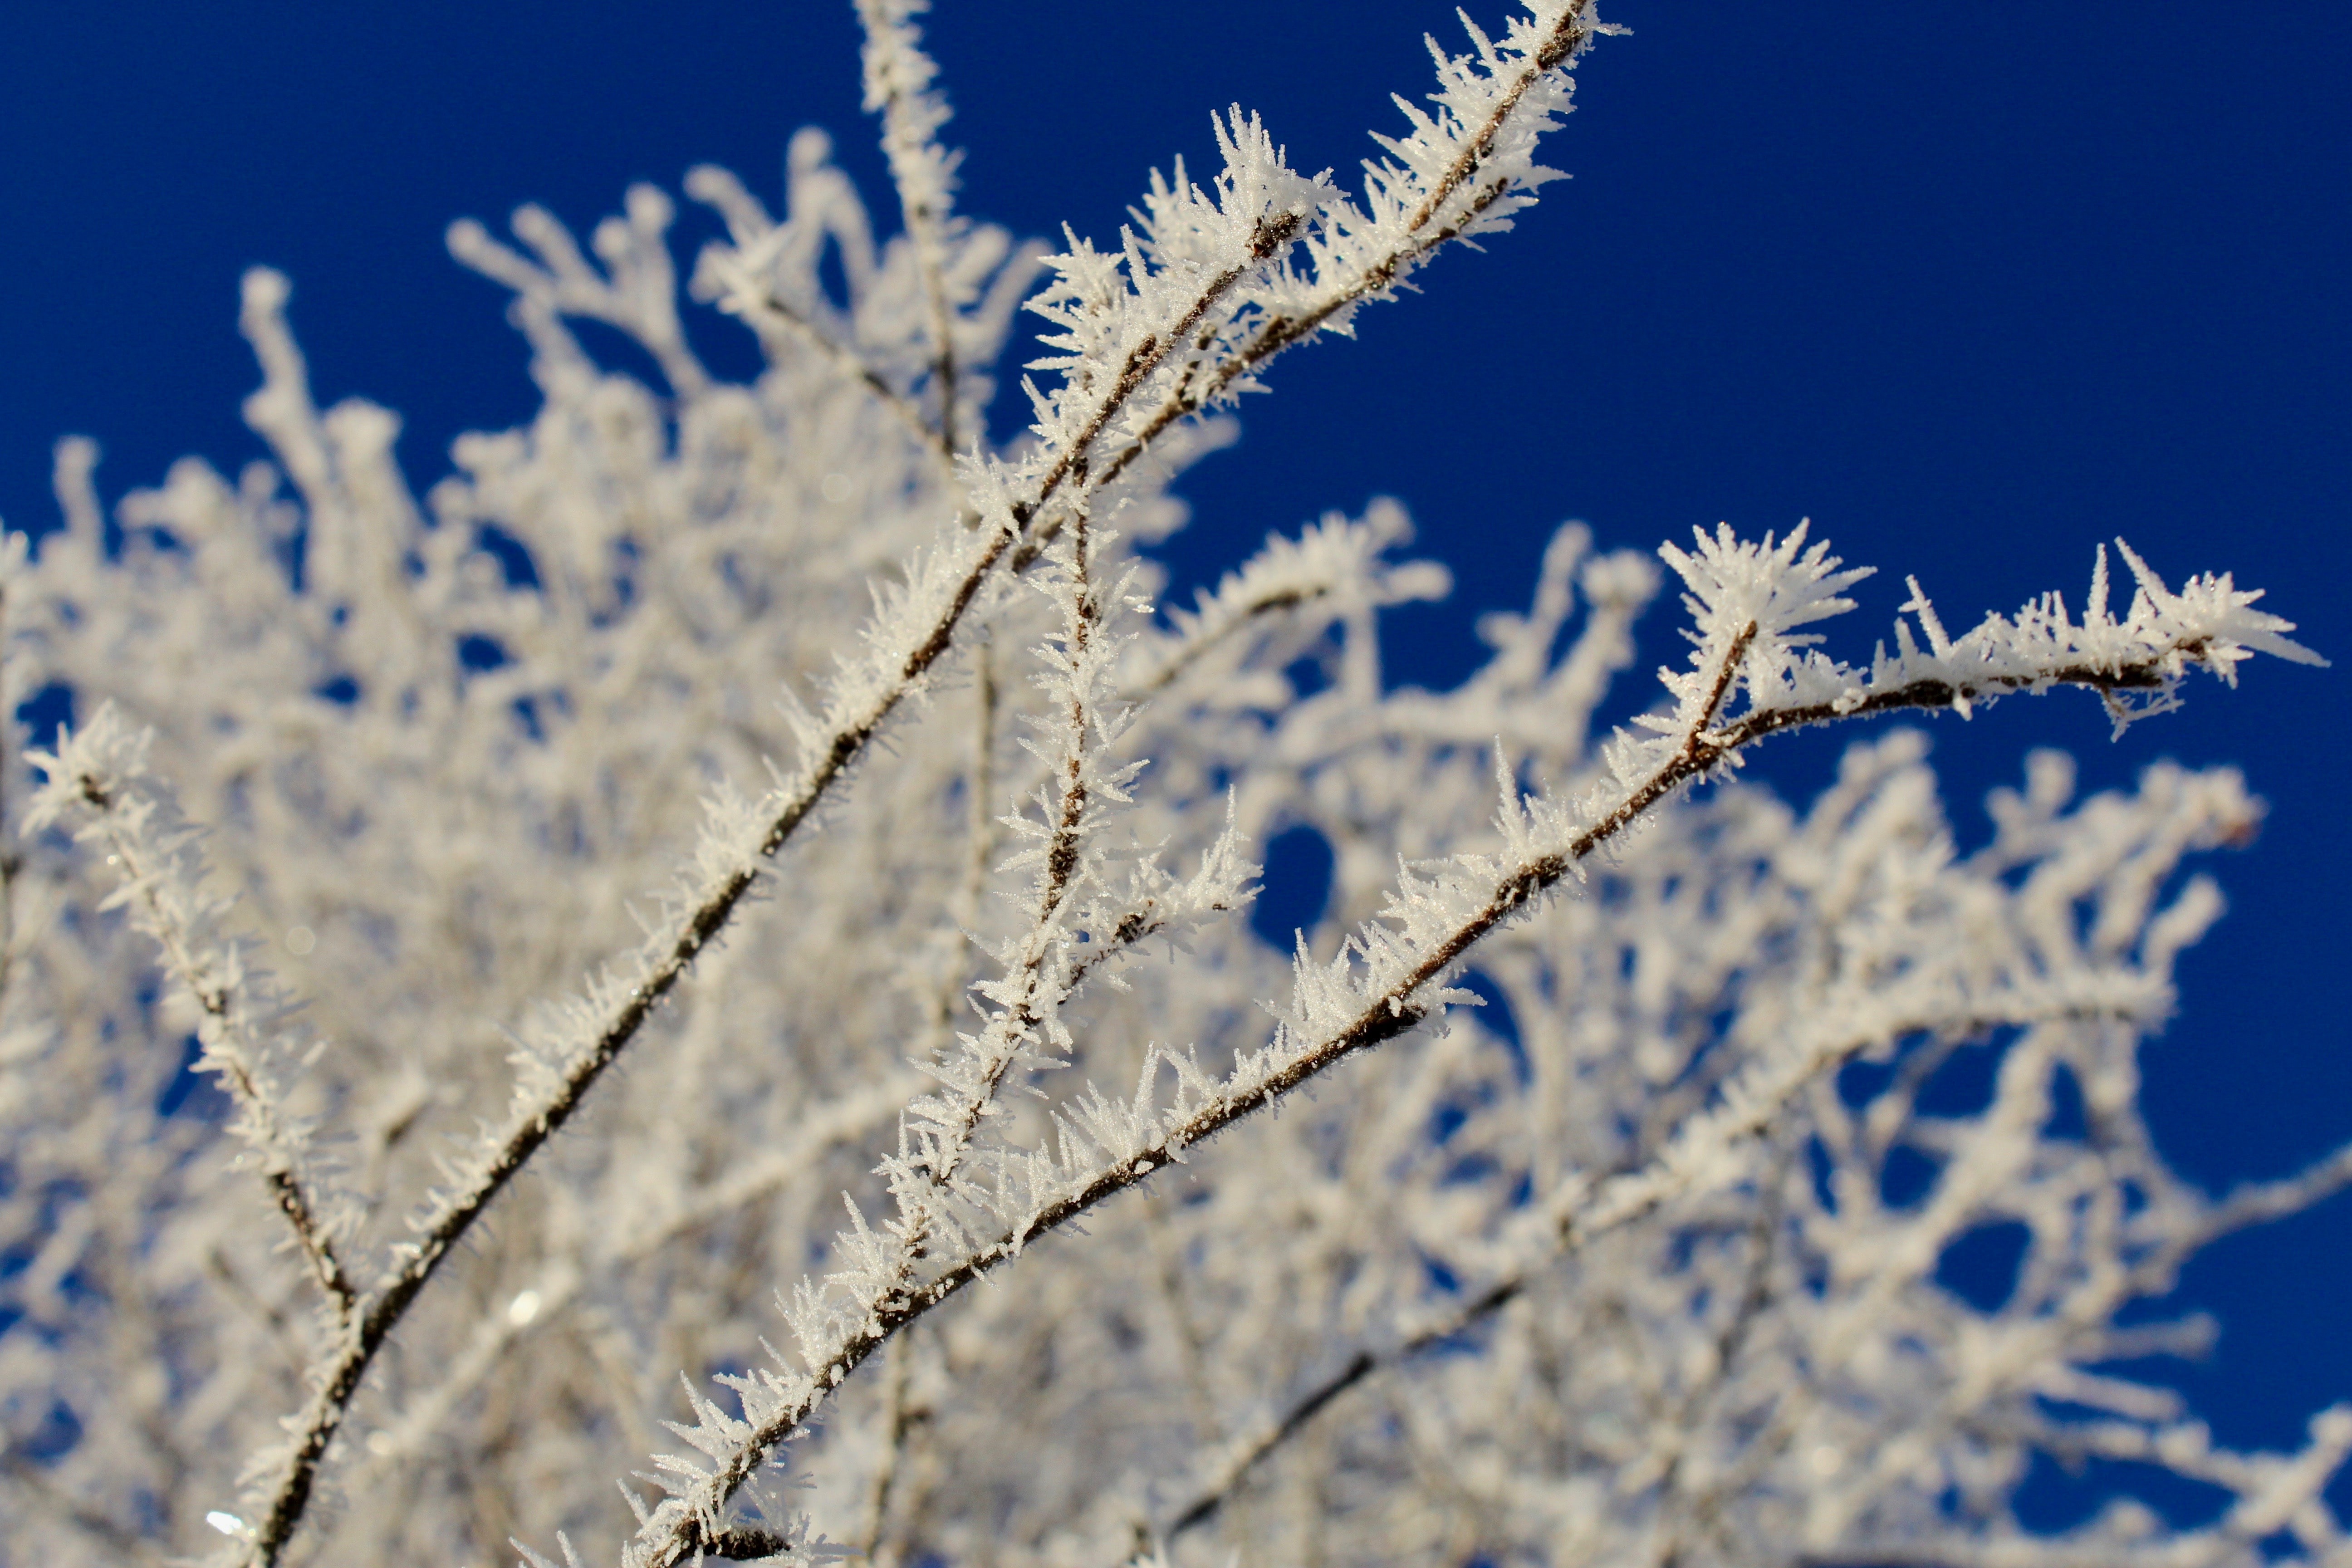 frozen twigs in selective focus photography